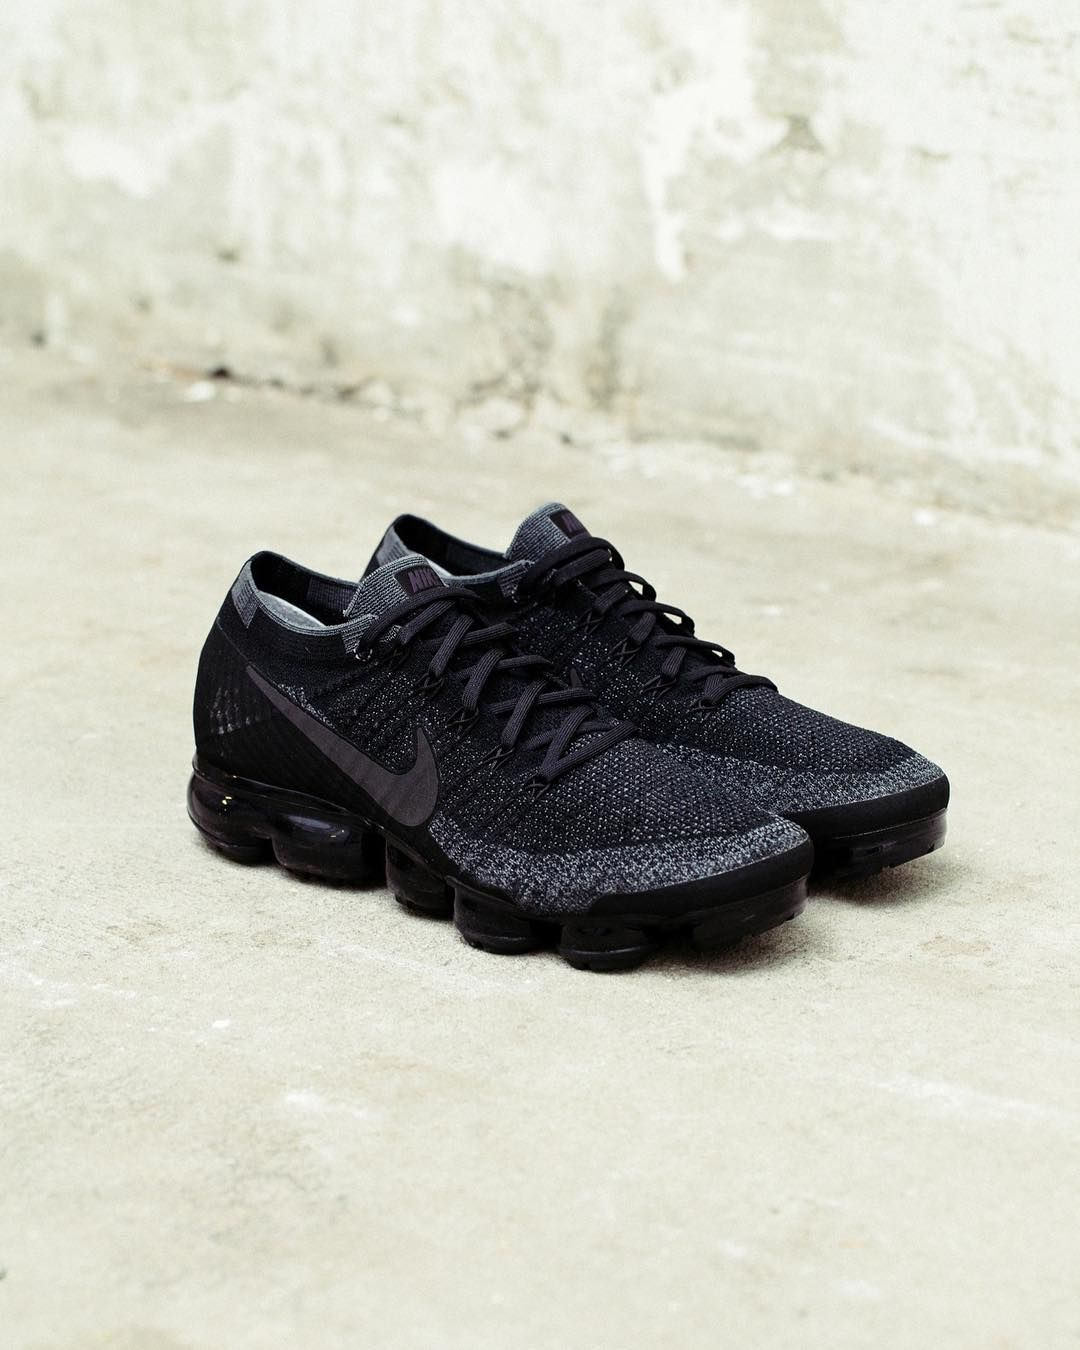 new product c0680 f2256 Nike Vapormax